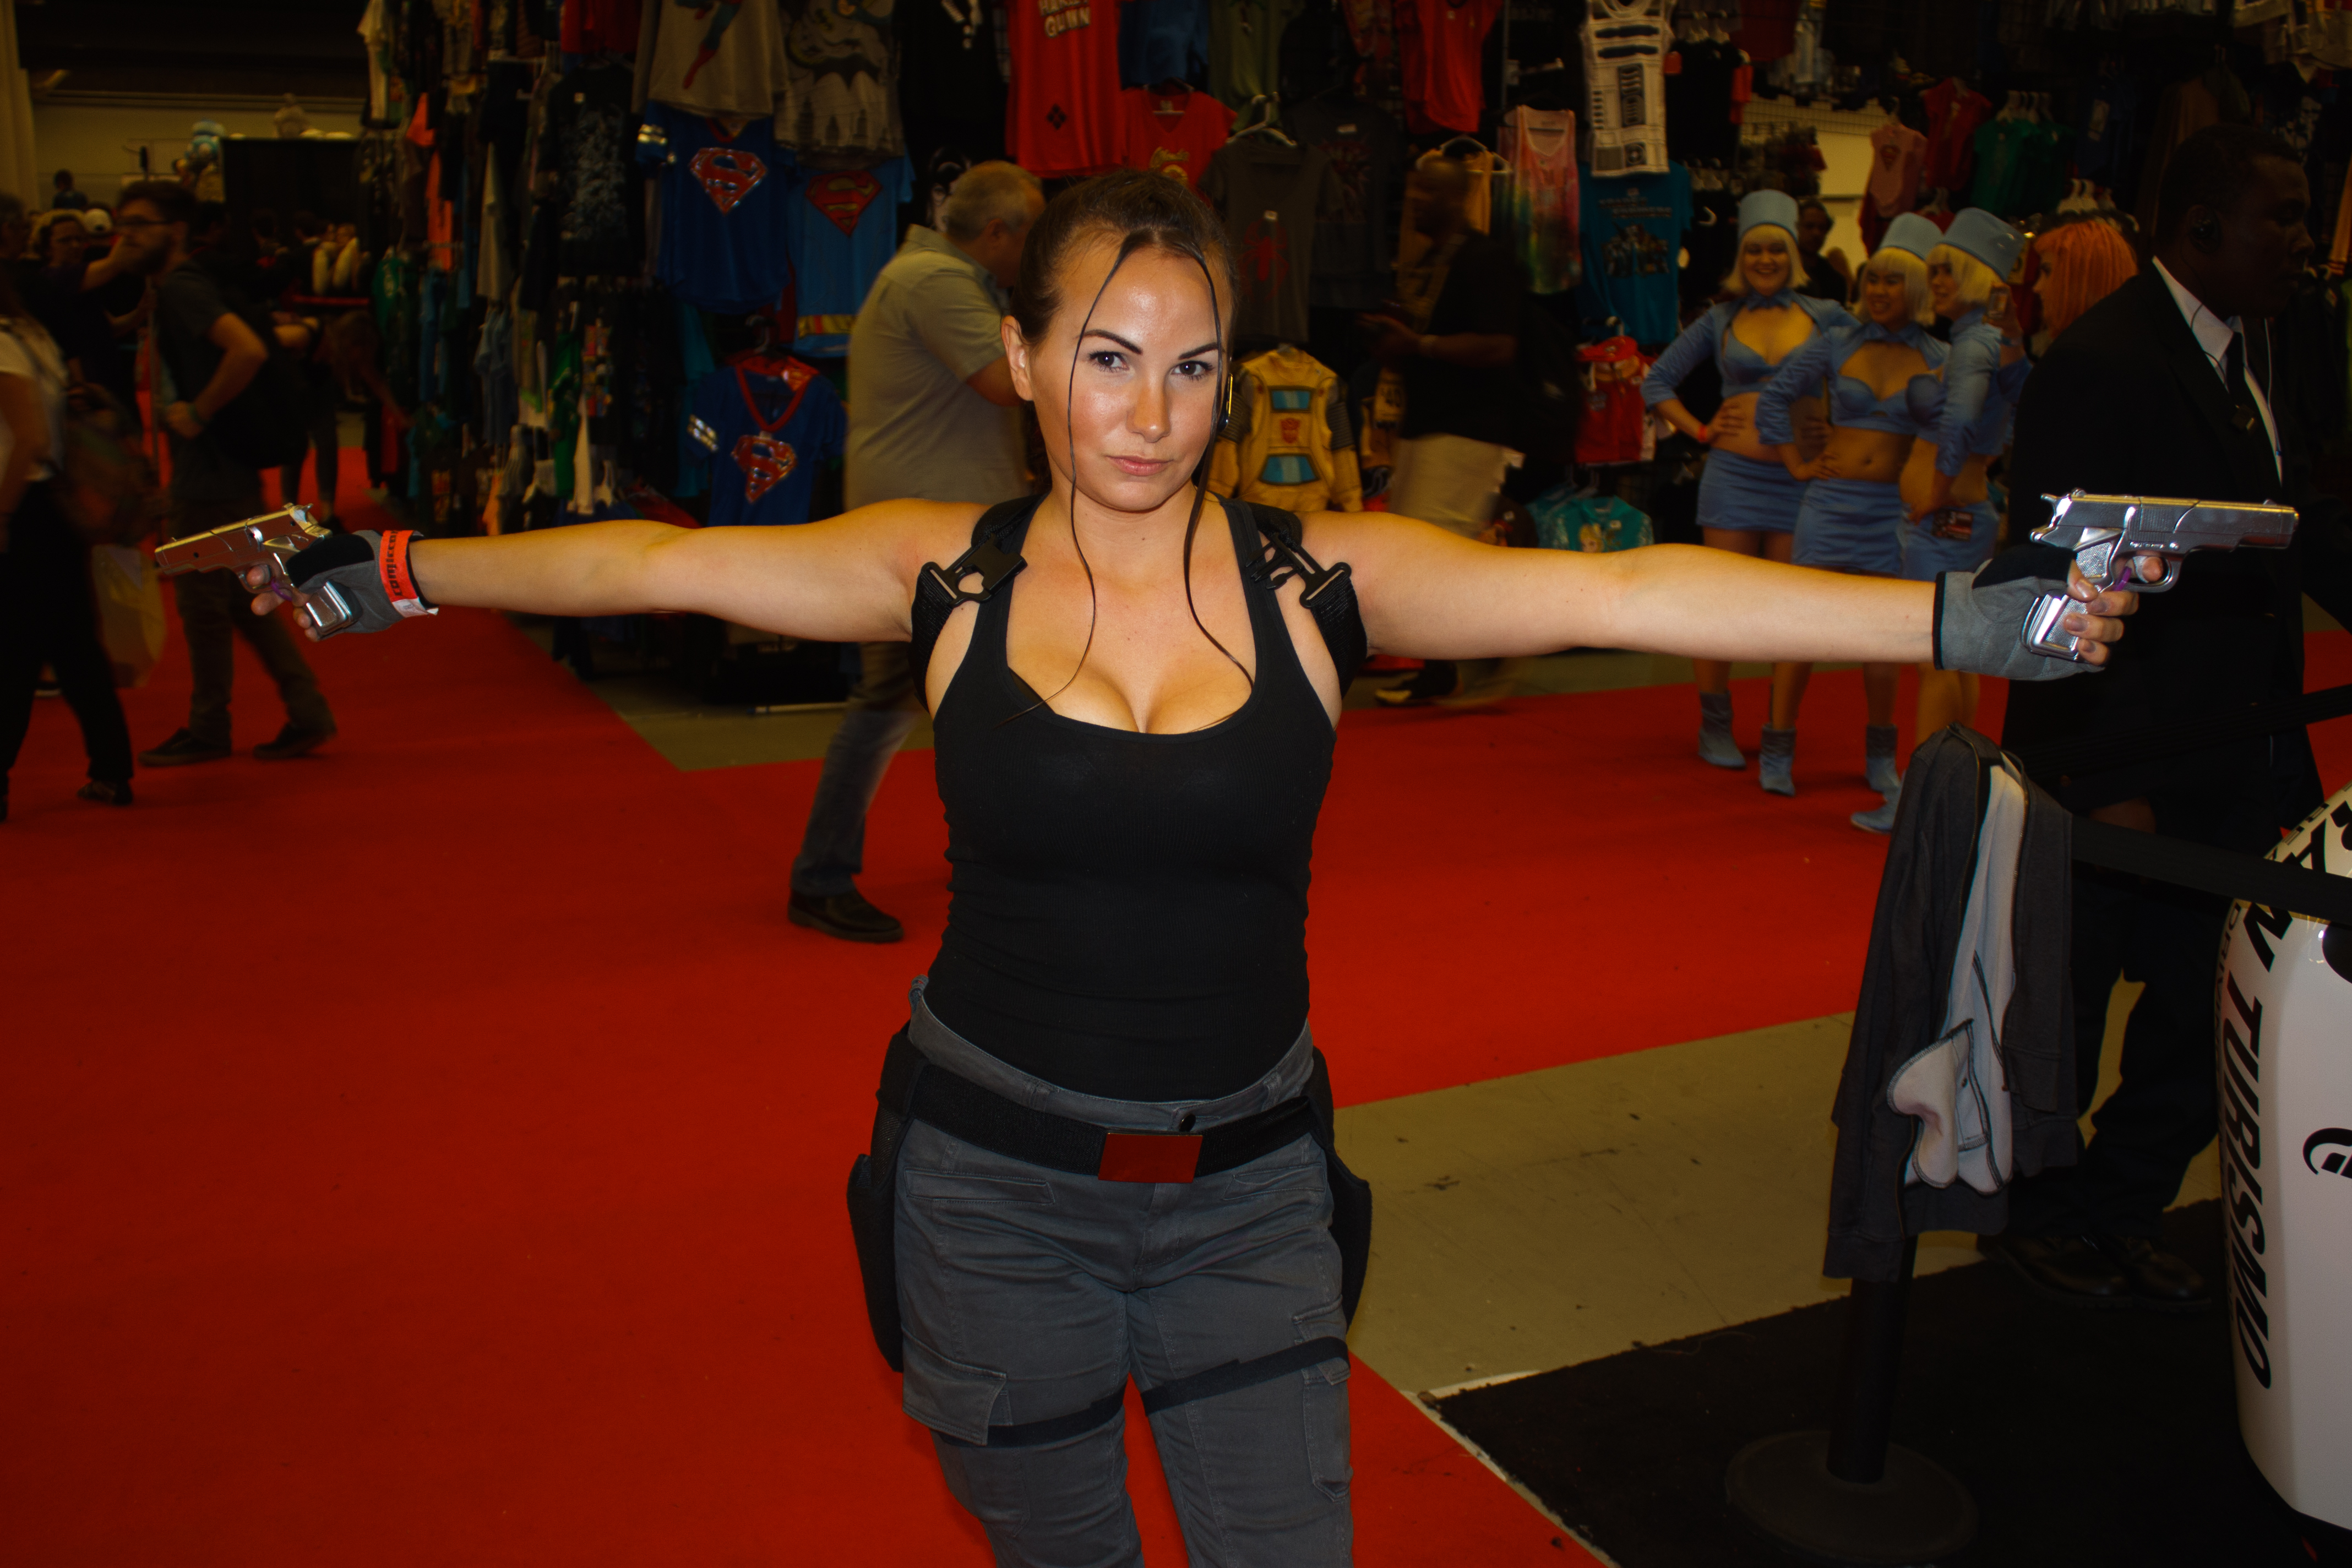 Montreal Comiccon 2016 - Lara Croft (27999690860).jpg Cosplay on Sunday, day three, of the Montreal Comiccon 2016. Date 10 July 2016, 16:50